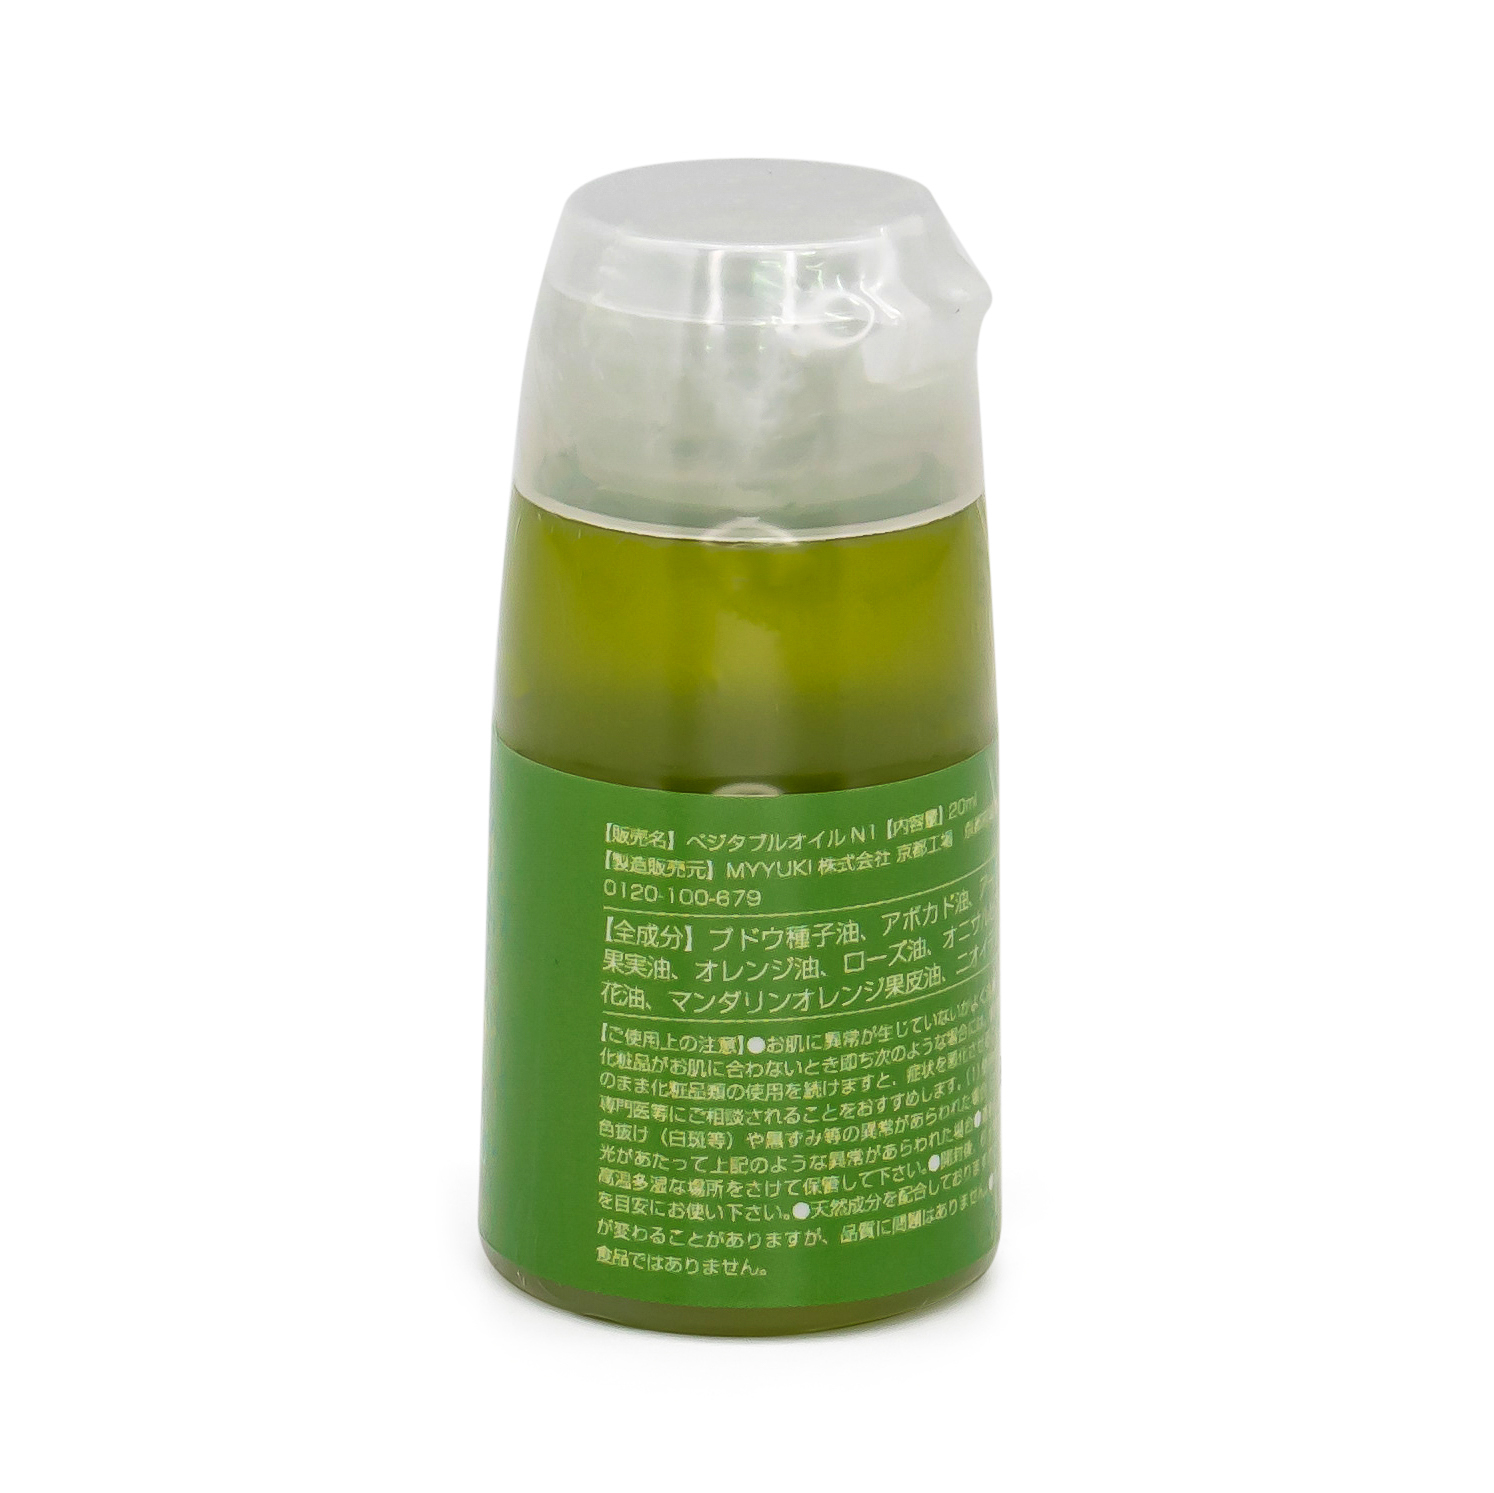 Vegetable Oil 20ml - side 1